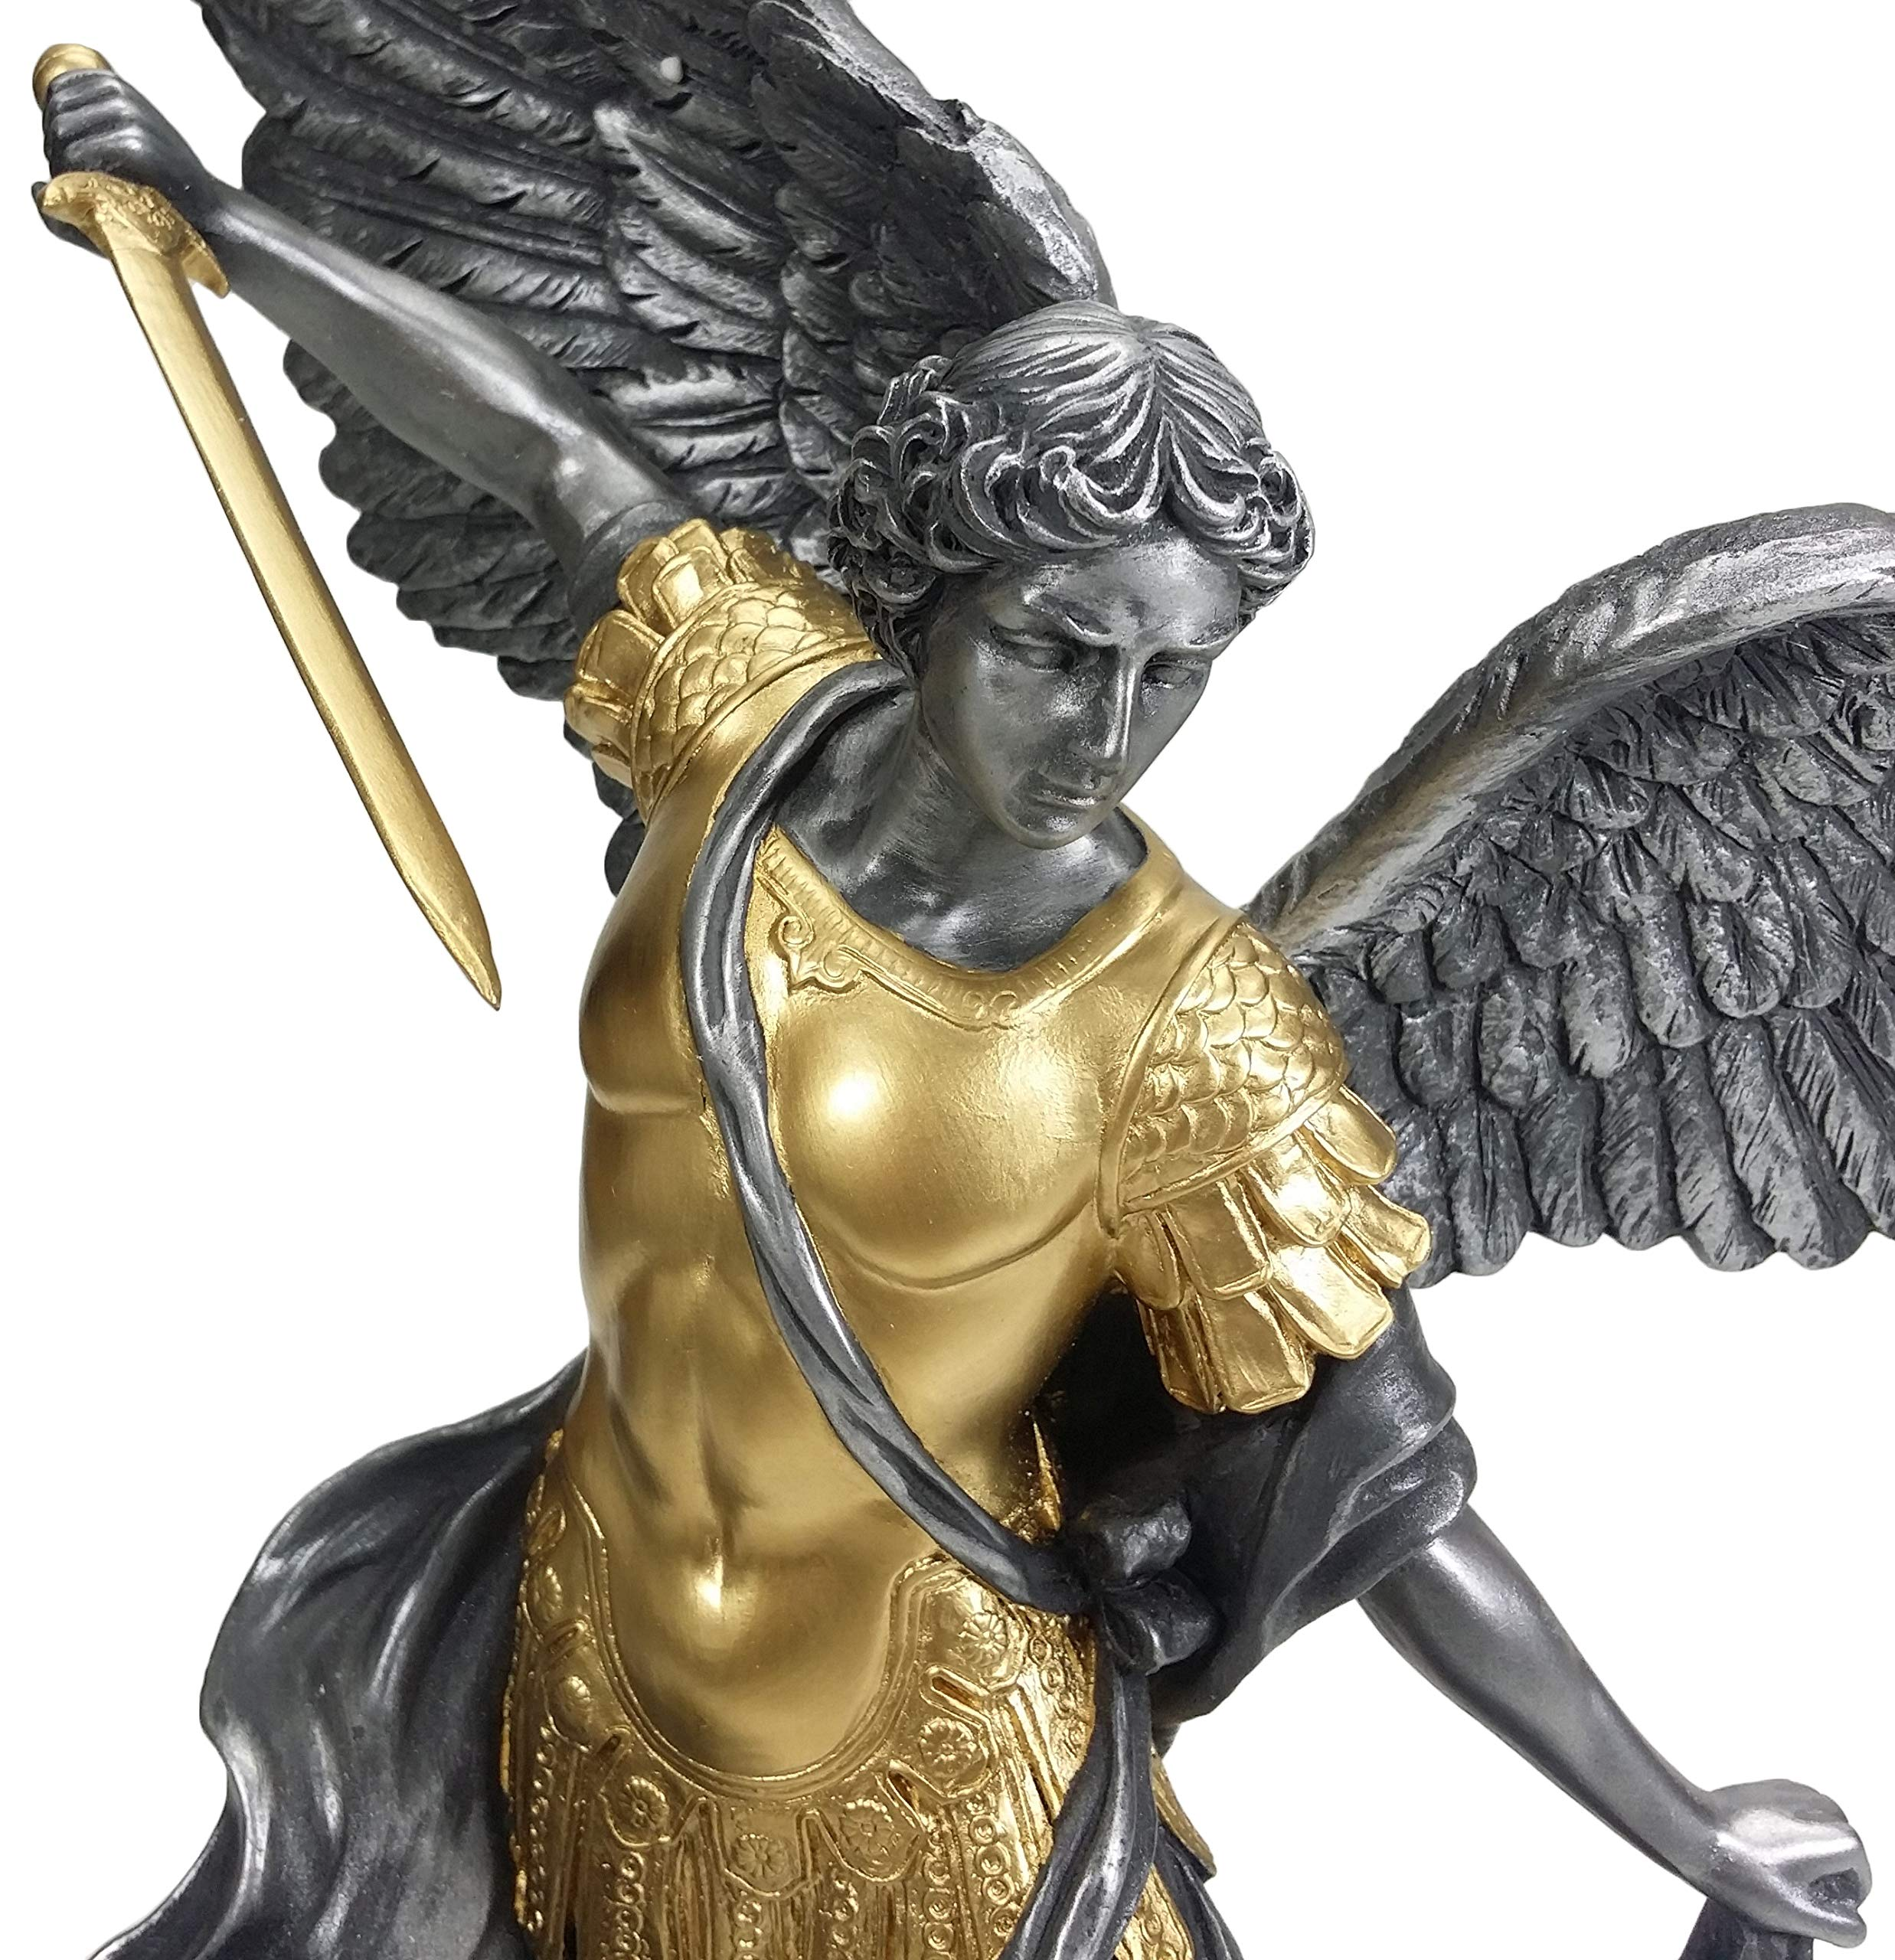 14 1/2 inch pewter and gold Archangel Saint Michael tramples Demon statue sculpture by VERONESE